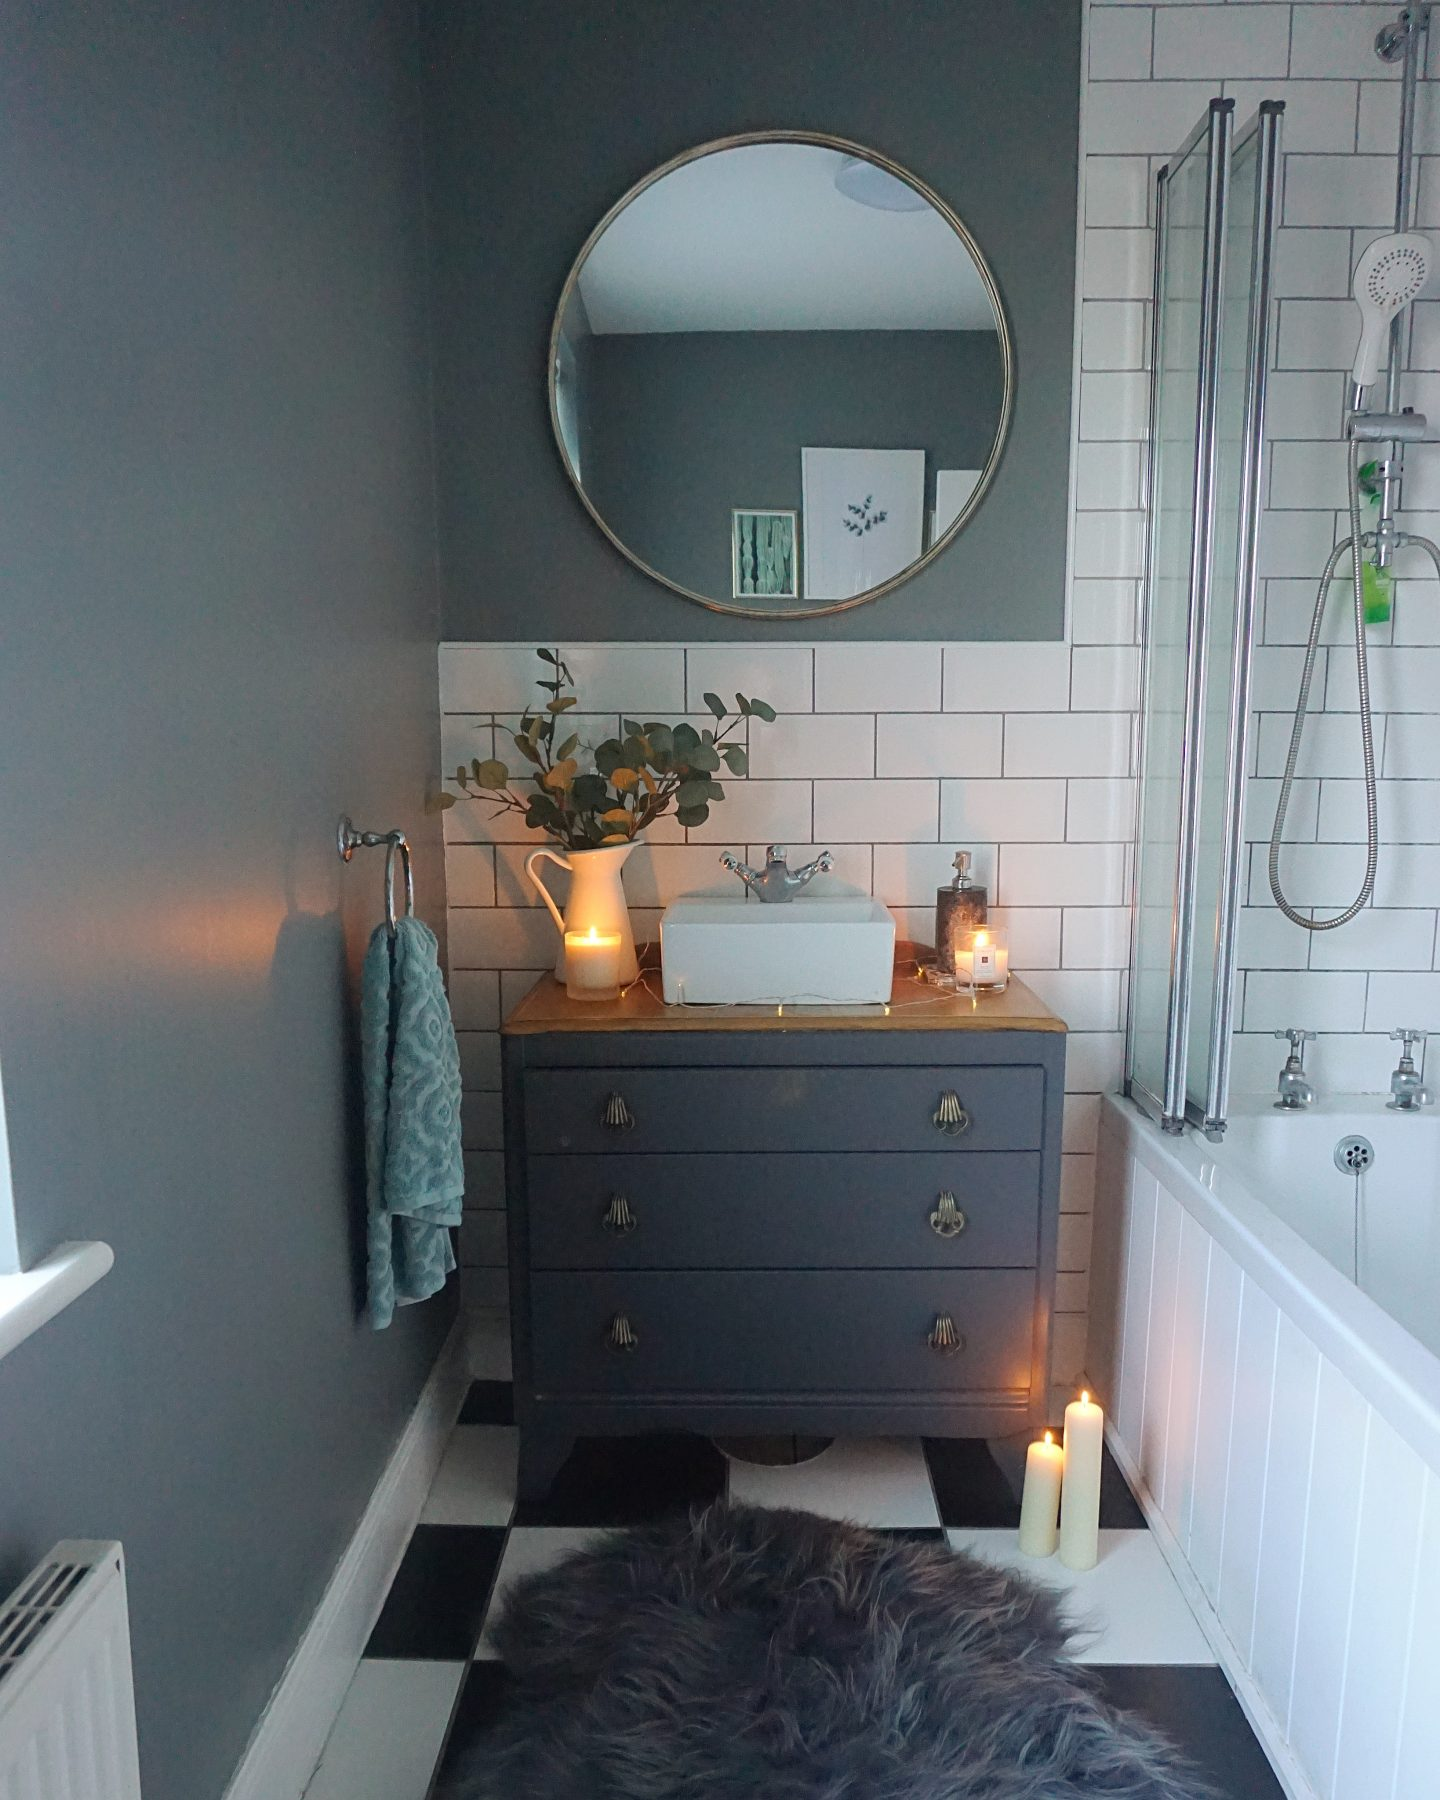 How we transformed a £25 chest of drawers into our dream vanity unit